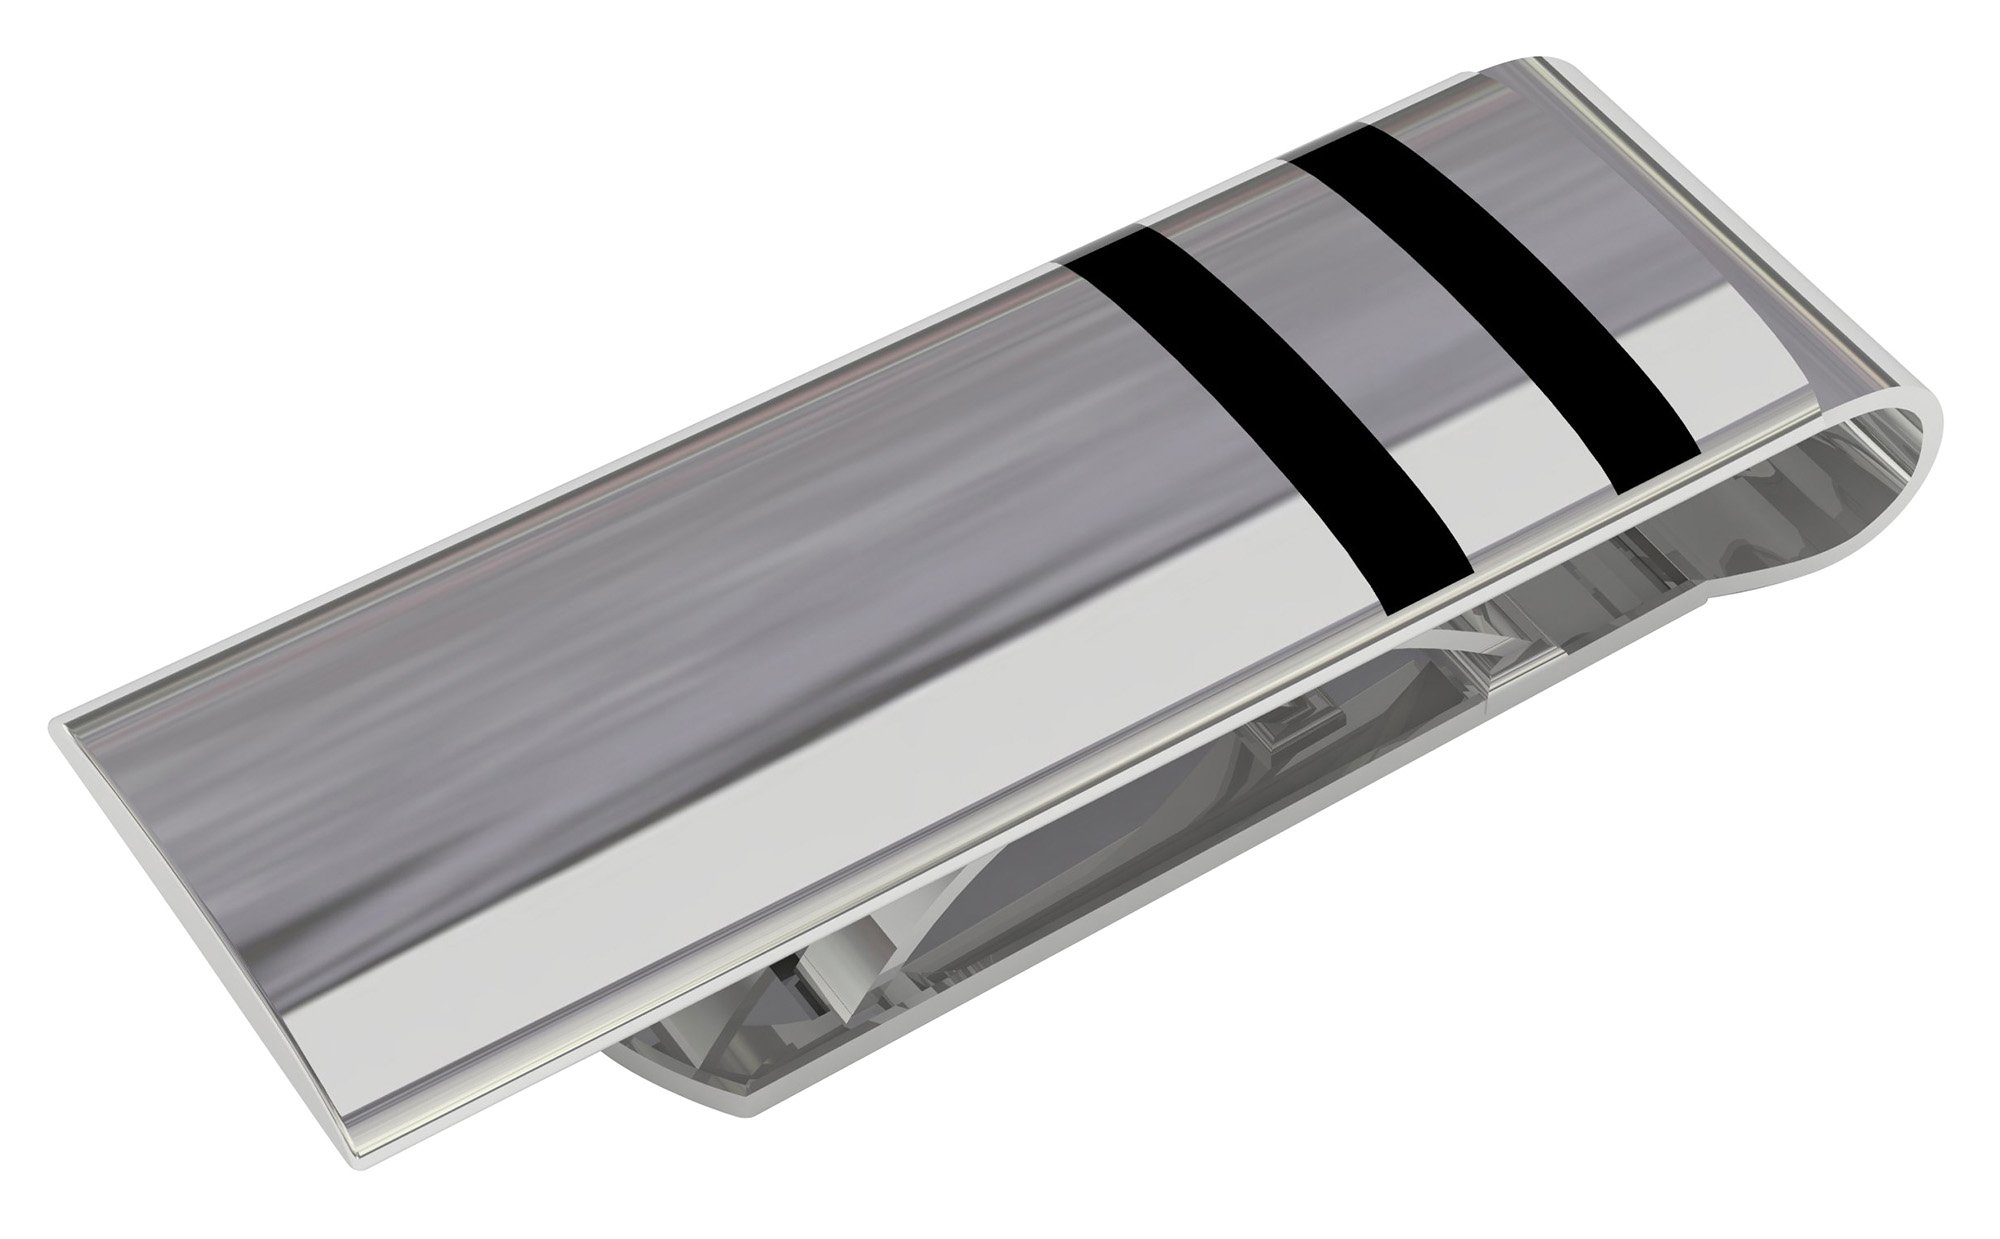 Stainless Steel Money Clip - Deluxury Fine Accessories a Great Men's Gift